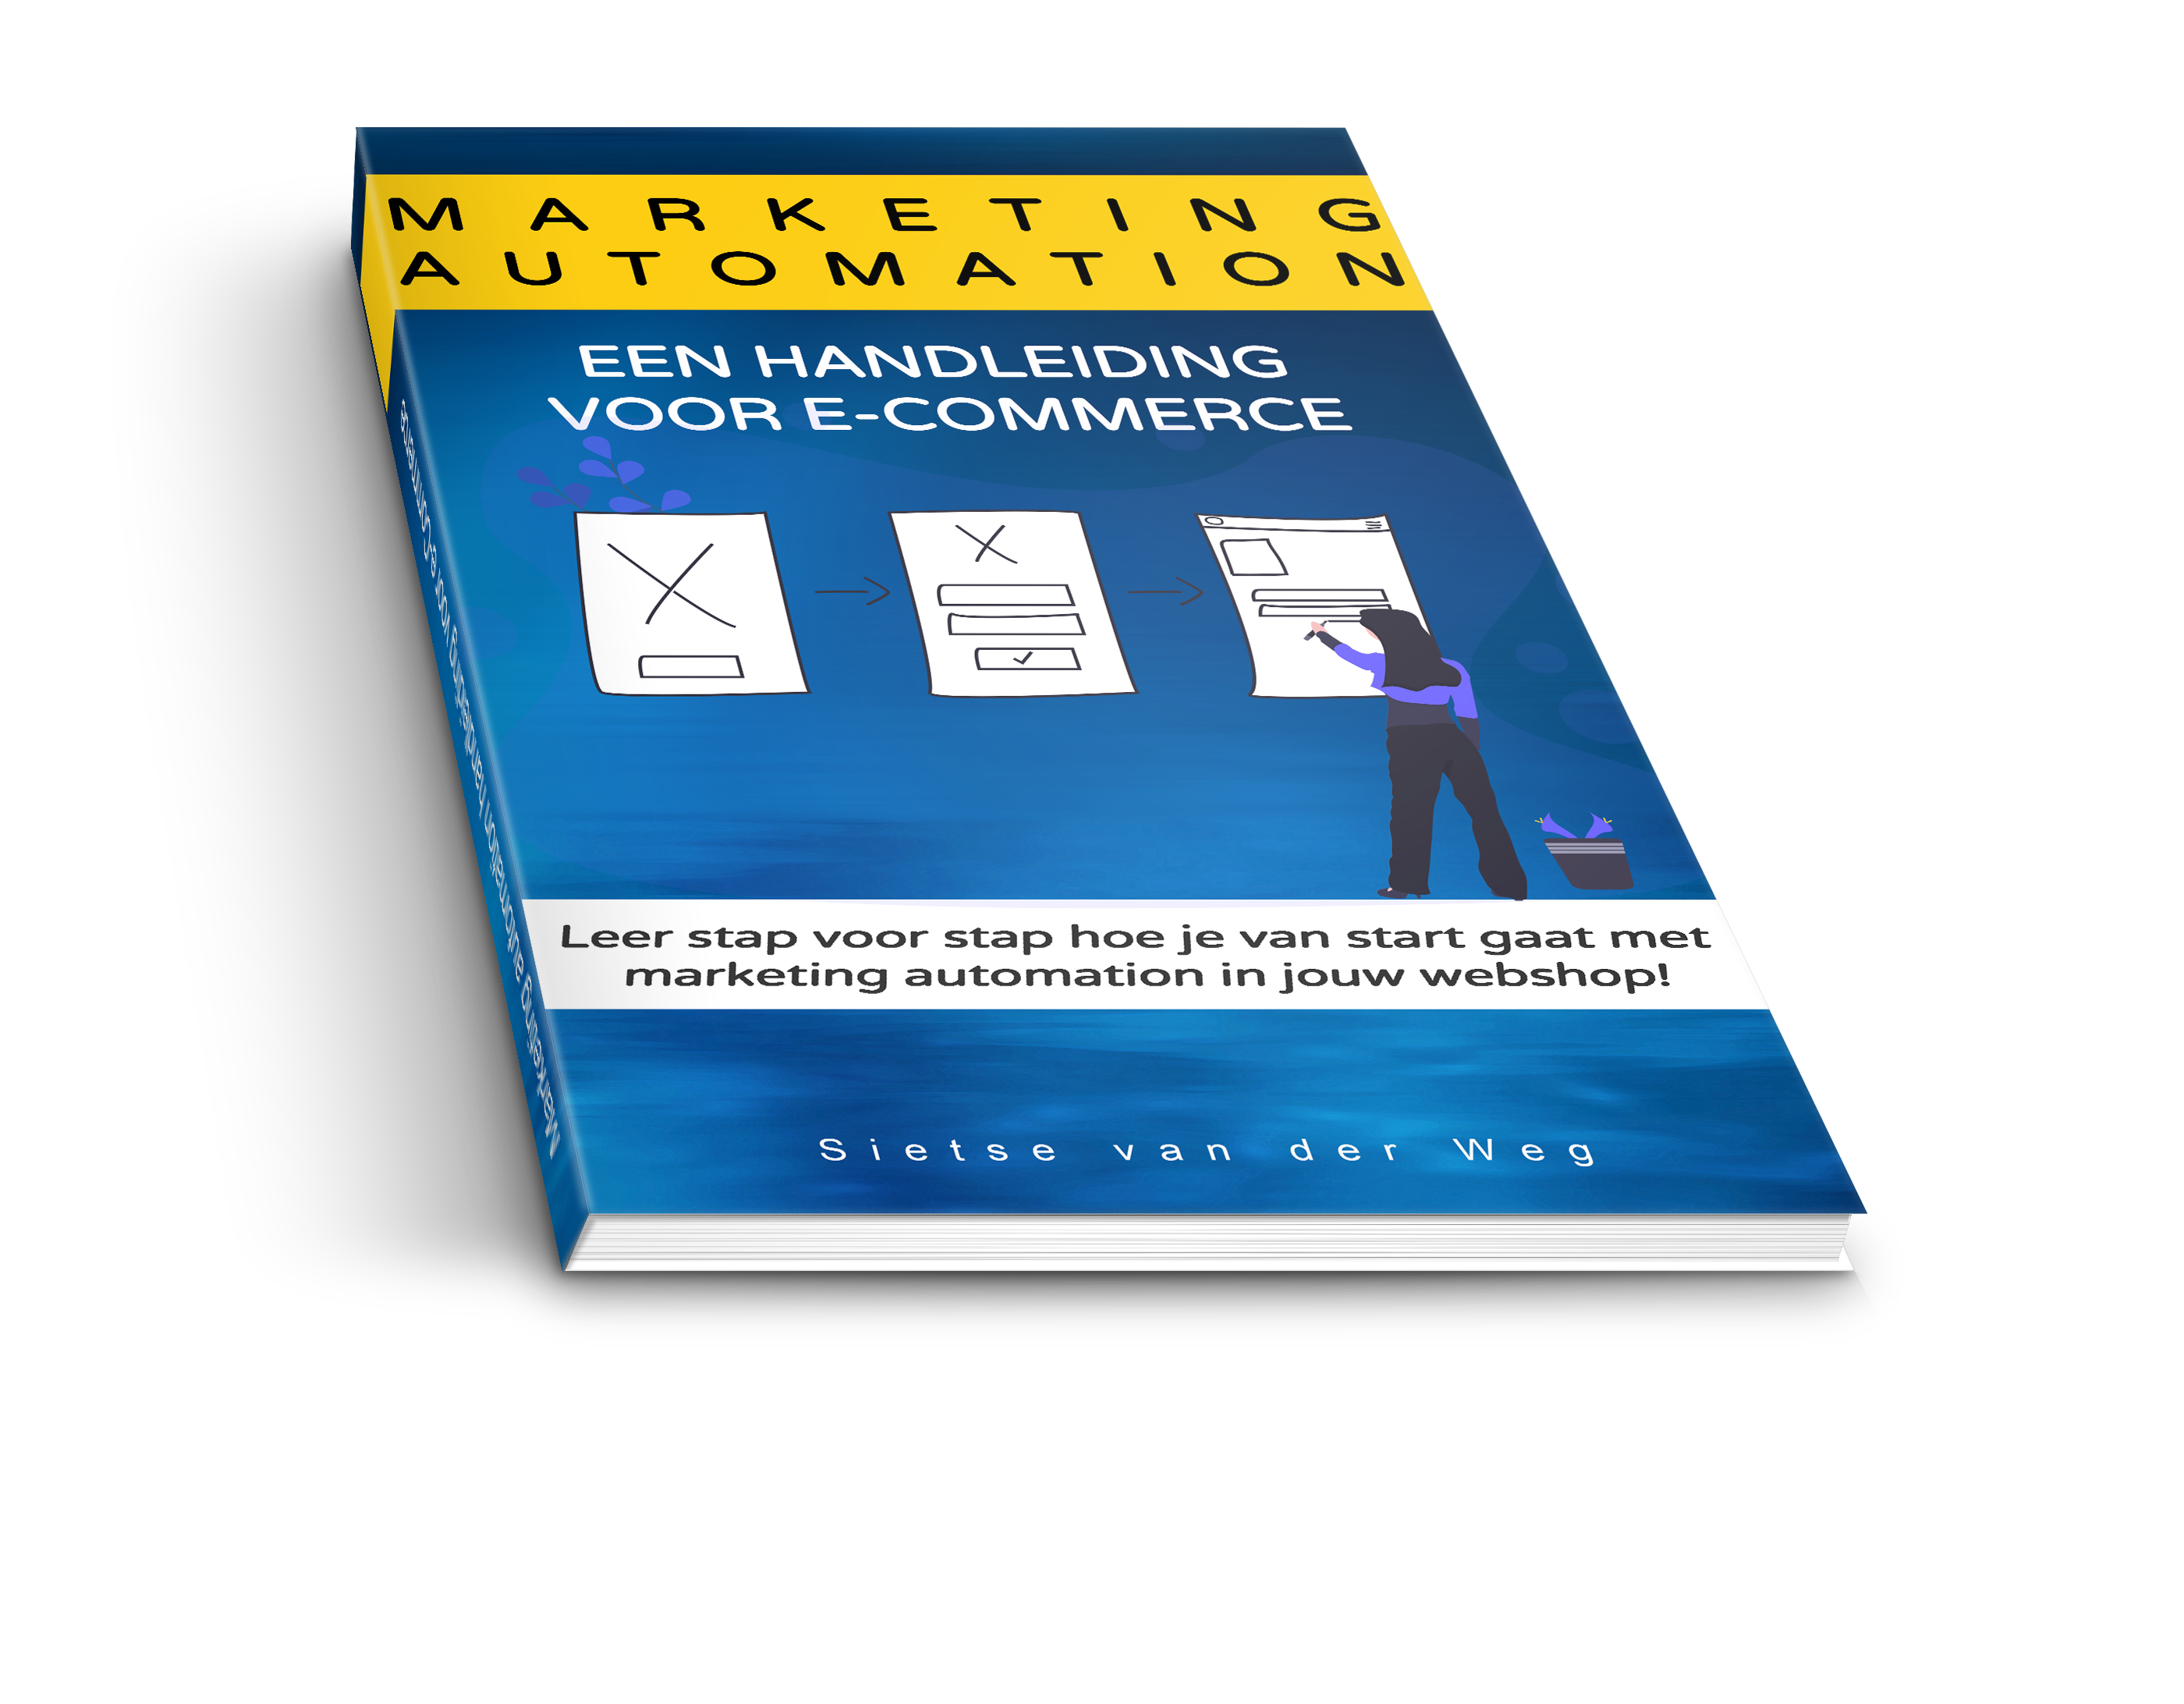 Marketing automation handleiding voor Ecommerce